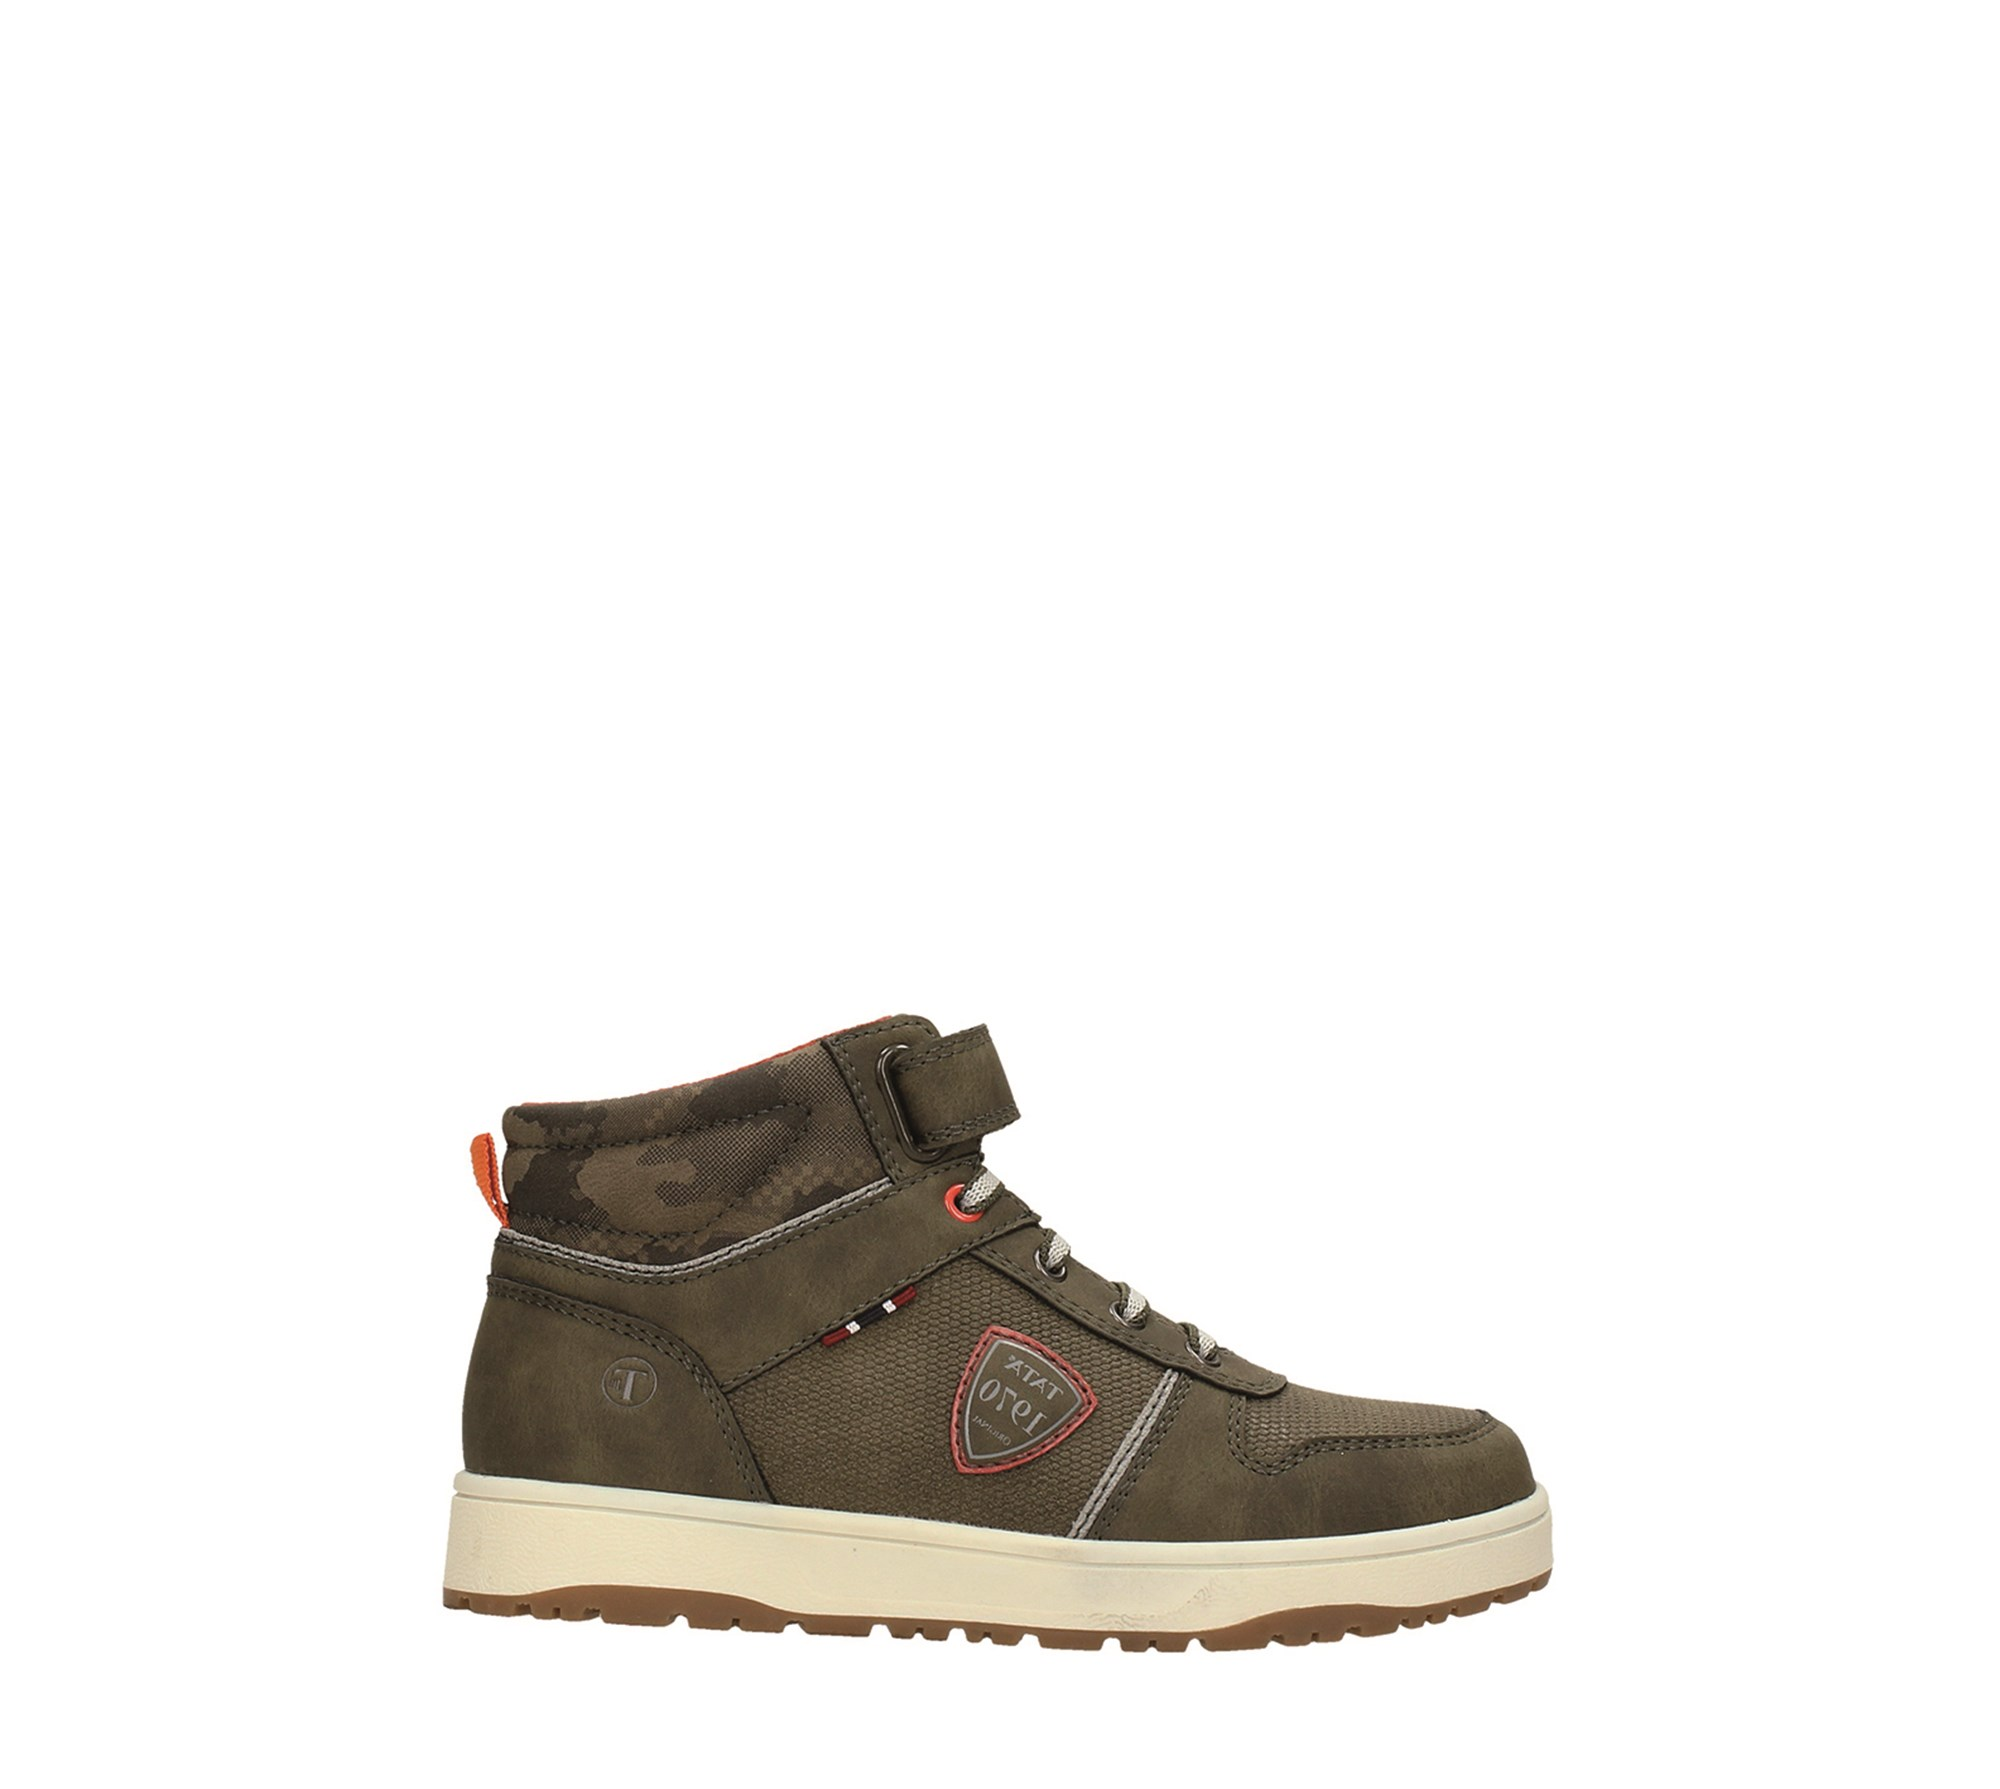 Tata Italia Shoes Junior Sneakers 810350-K-B101